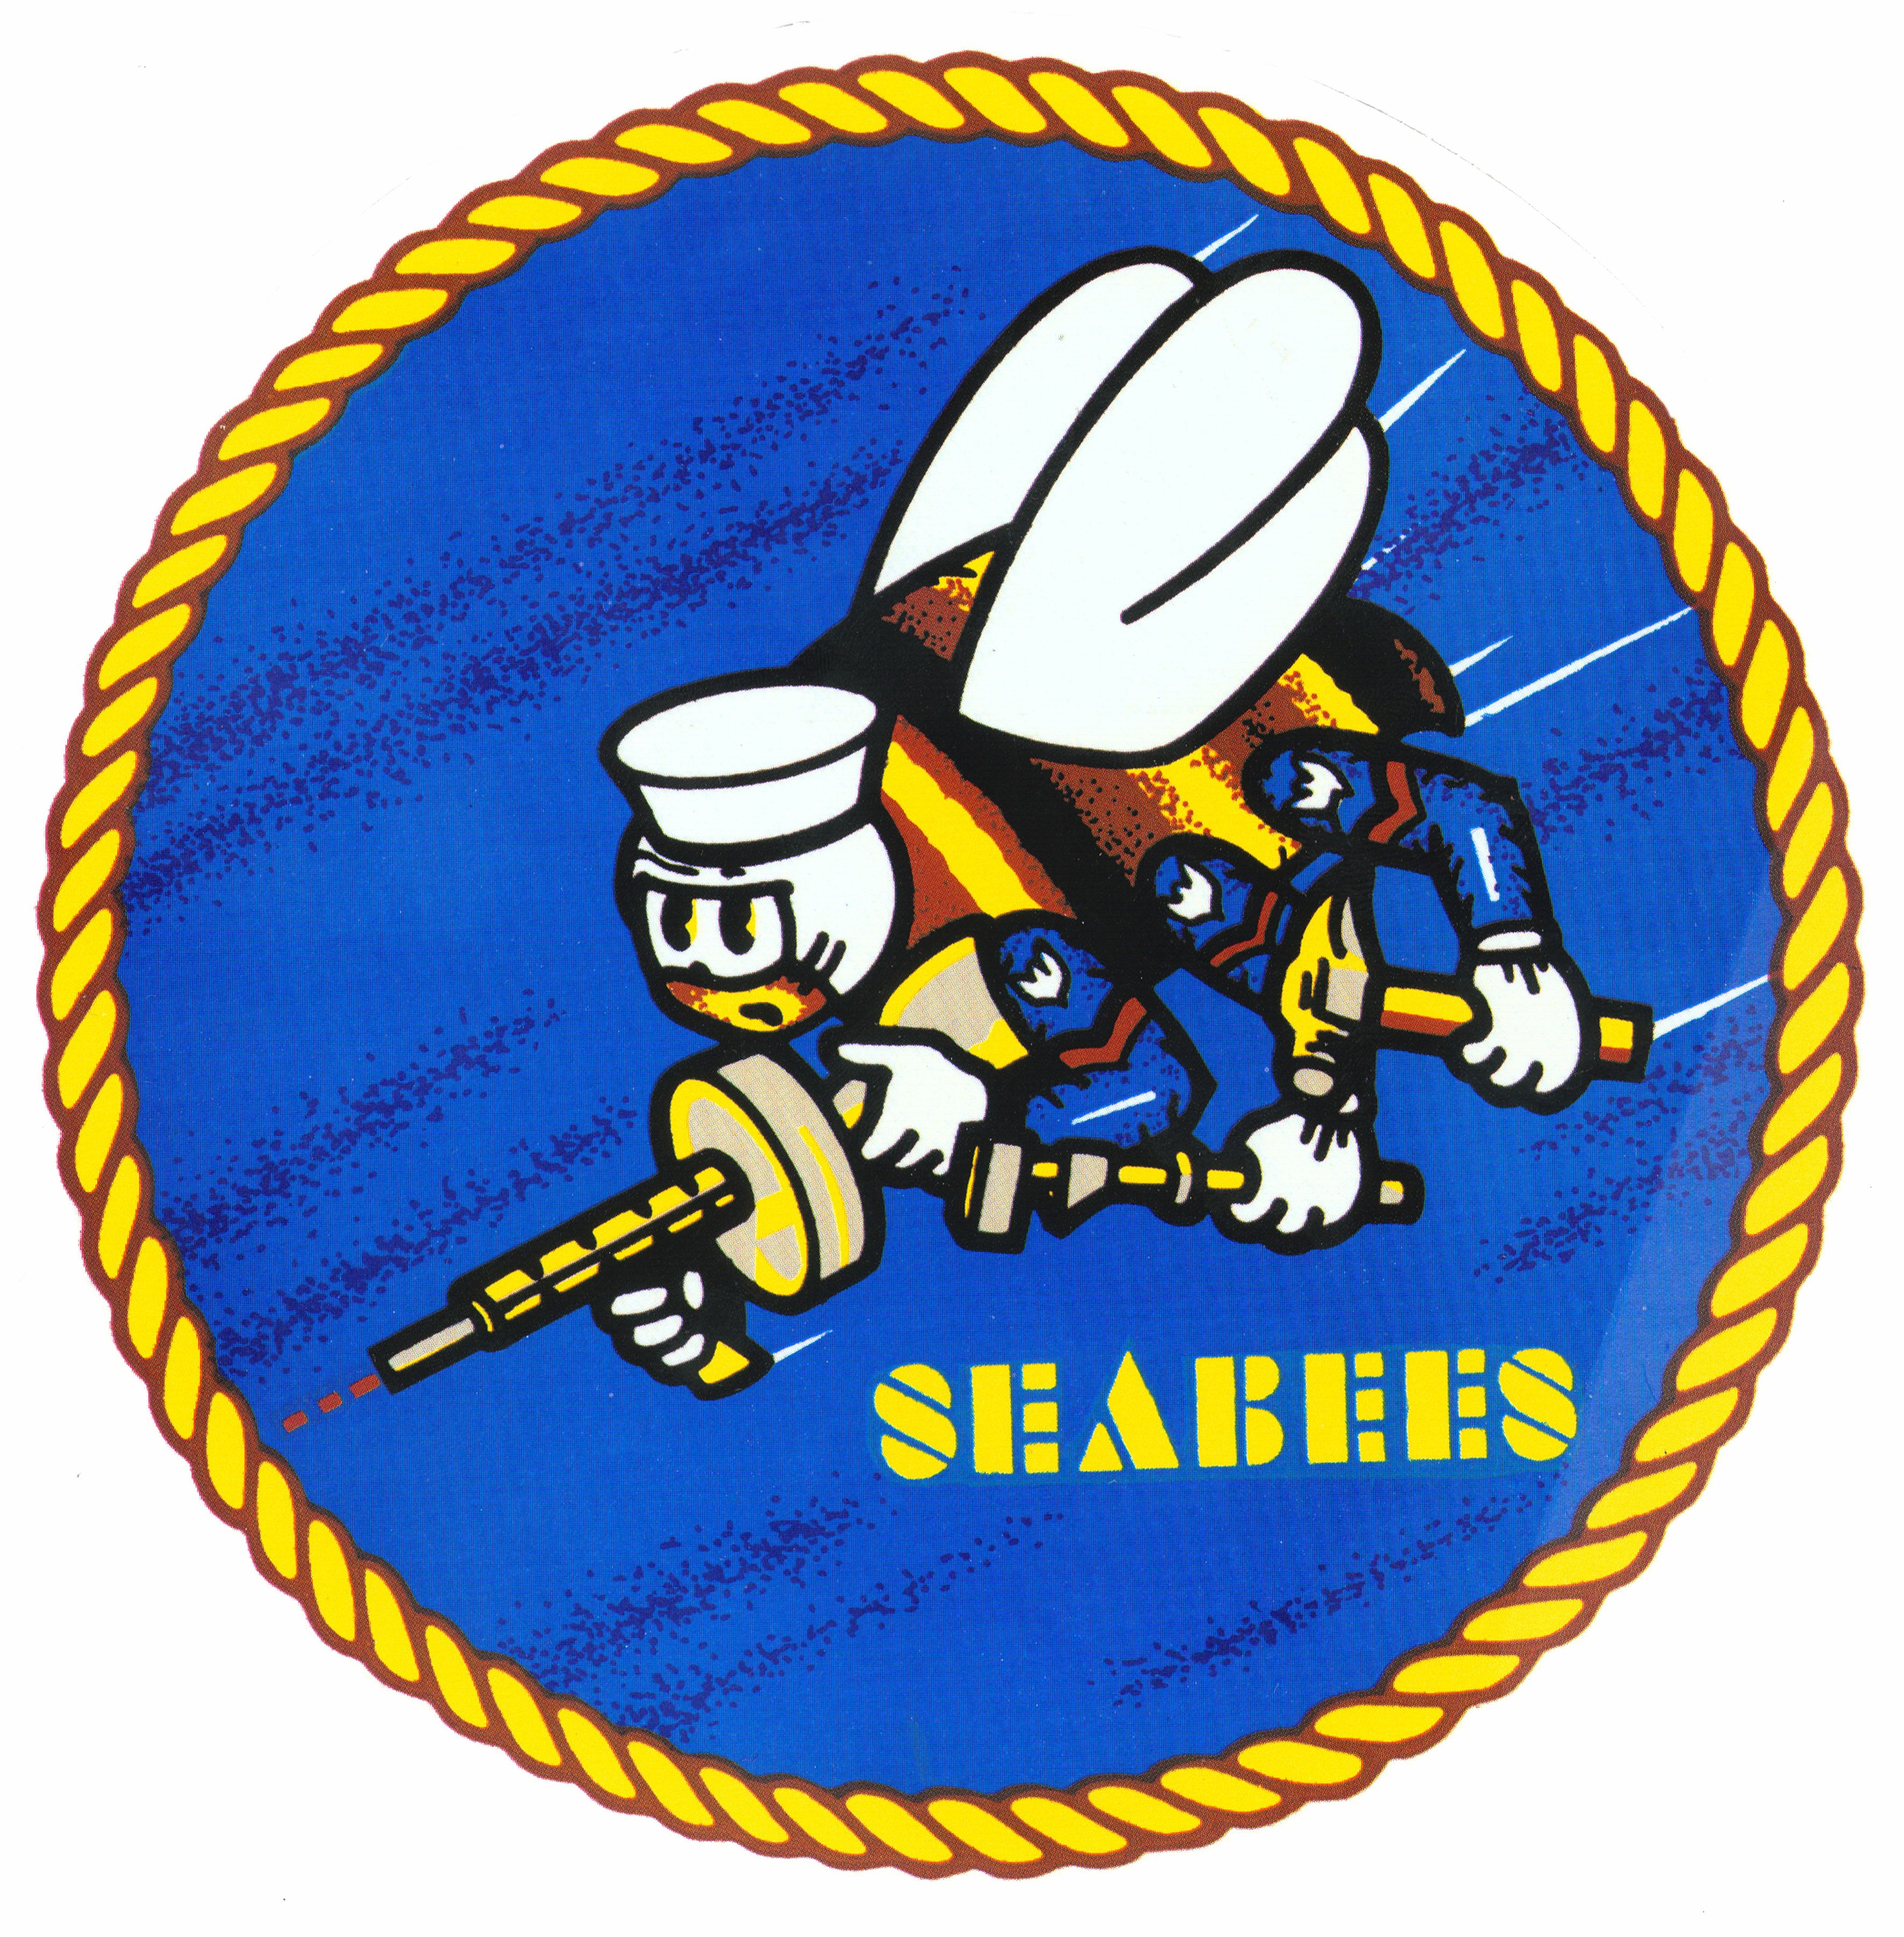 SEABEES logo Navy special forces, Us navy seabees